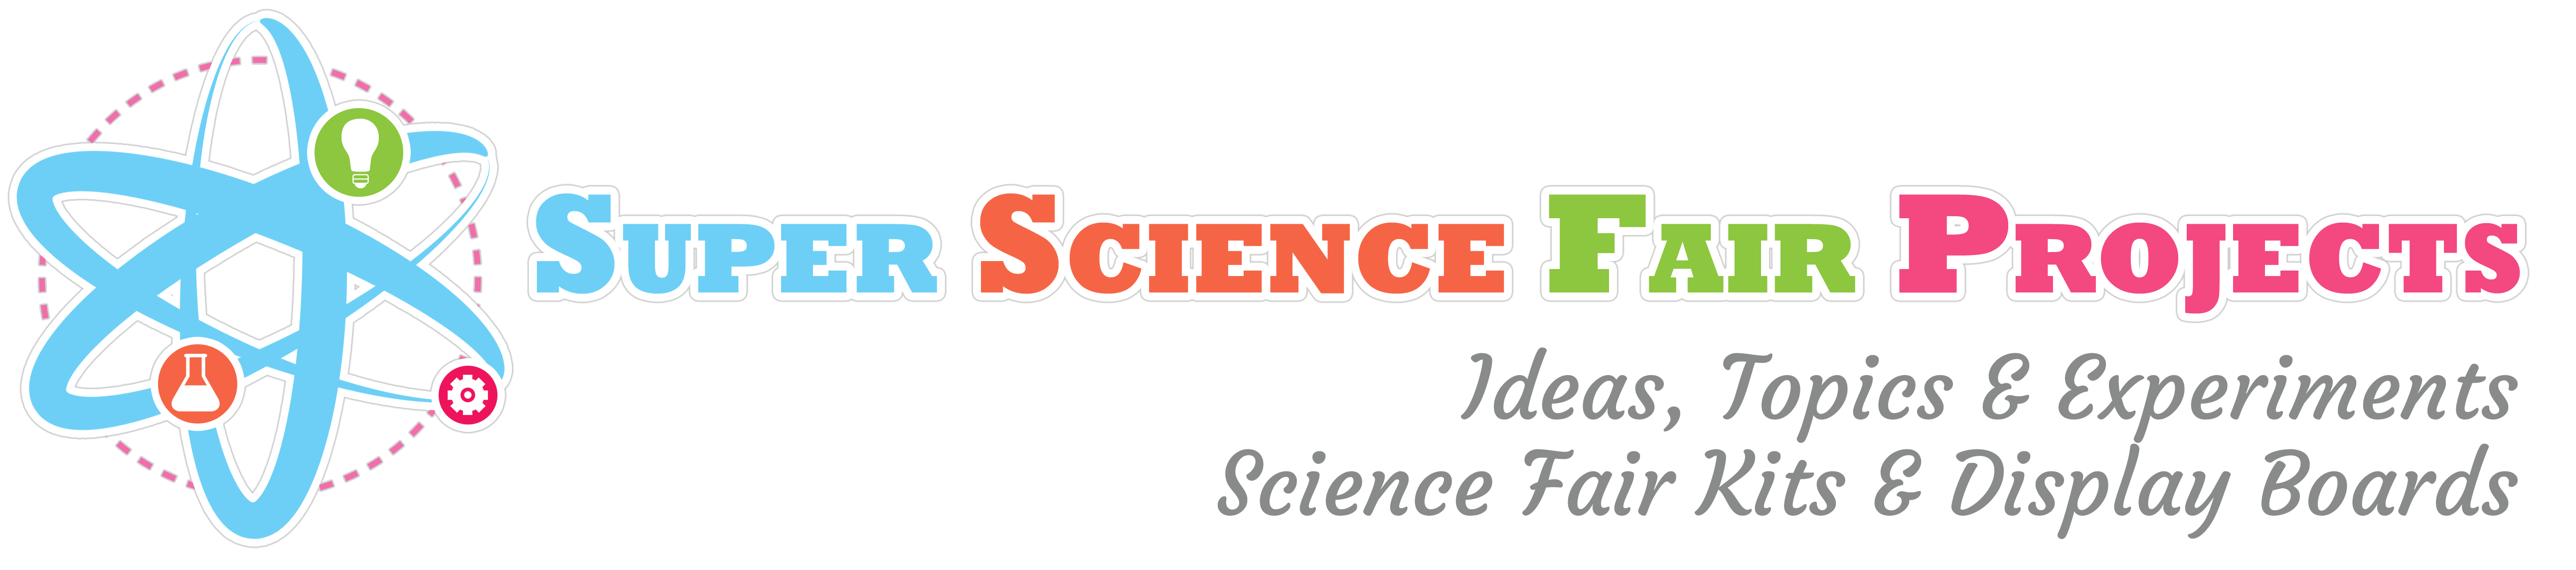 image of Super Science Fair Projects.com Logo